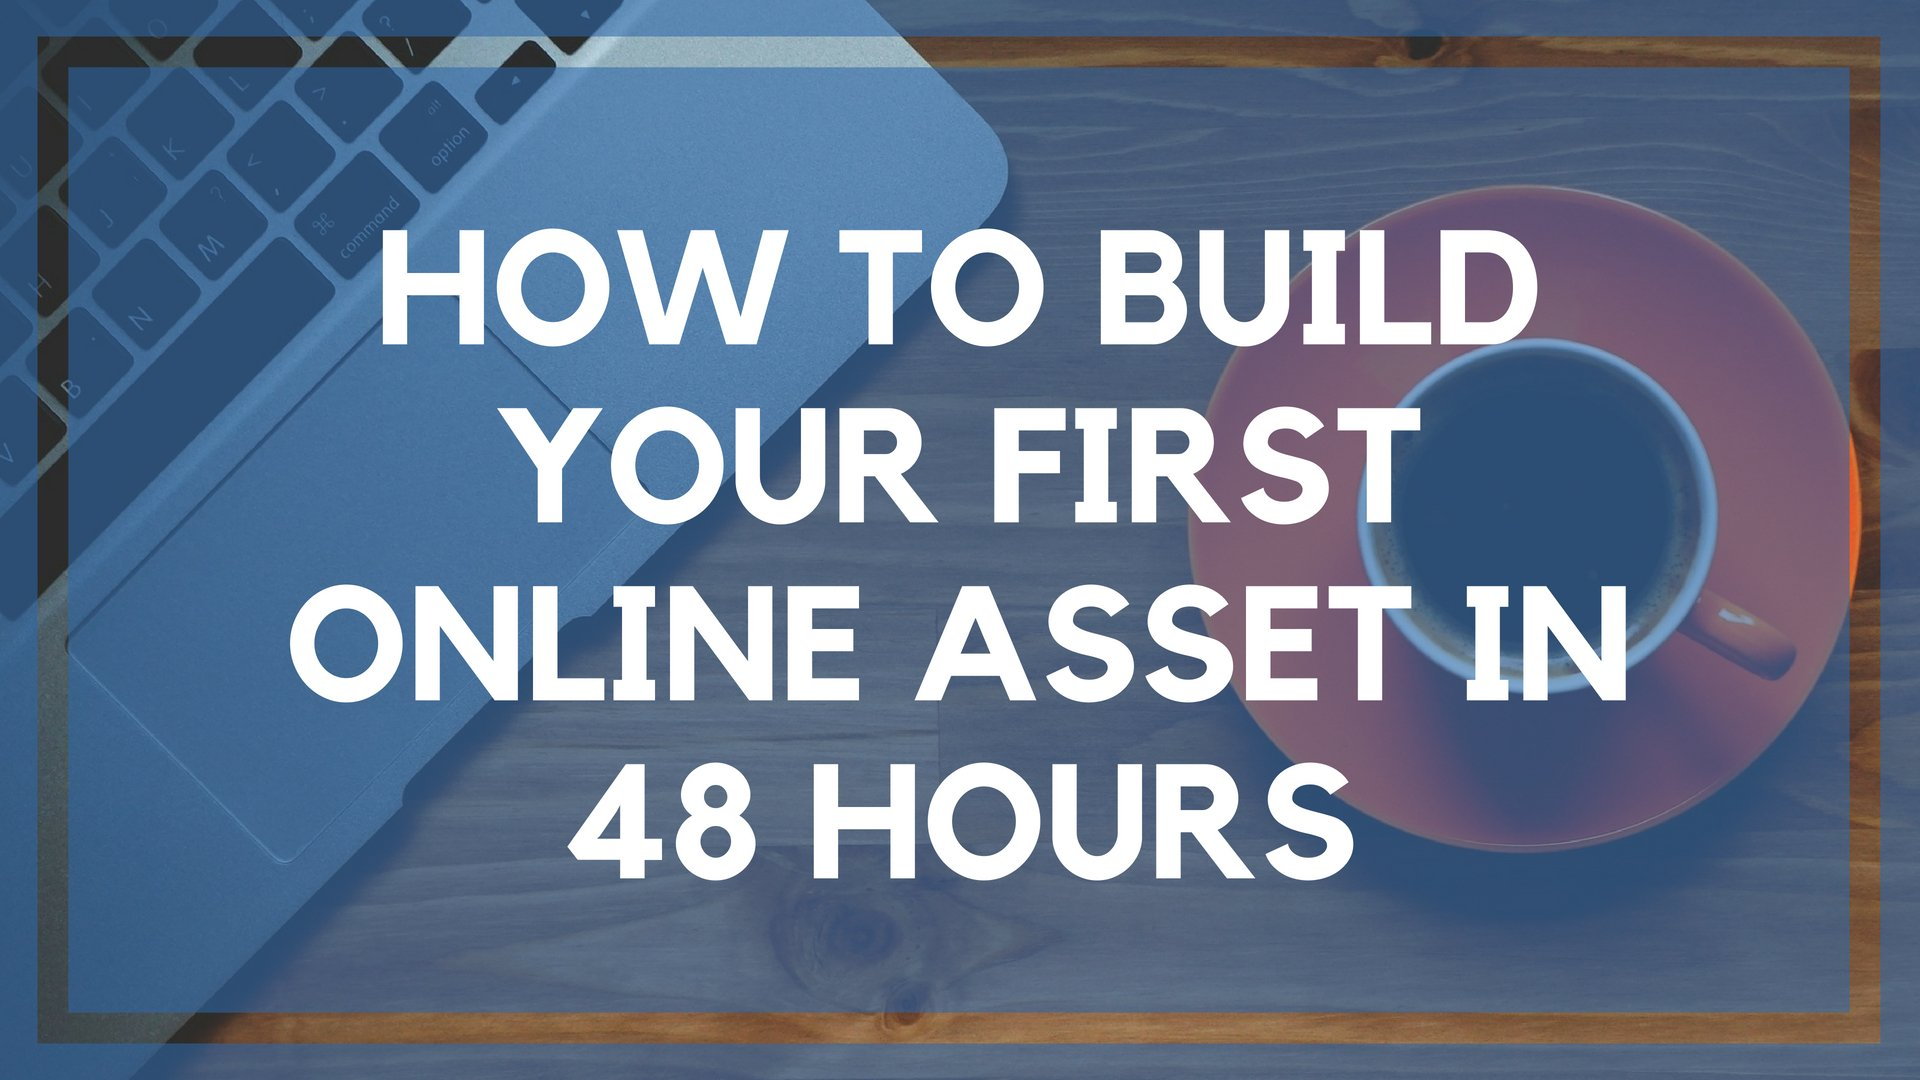 How To Draw A Perfect Circle 2009 Online how to build your first online asset in 48 hours